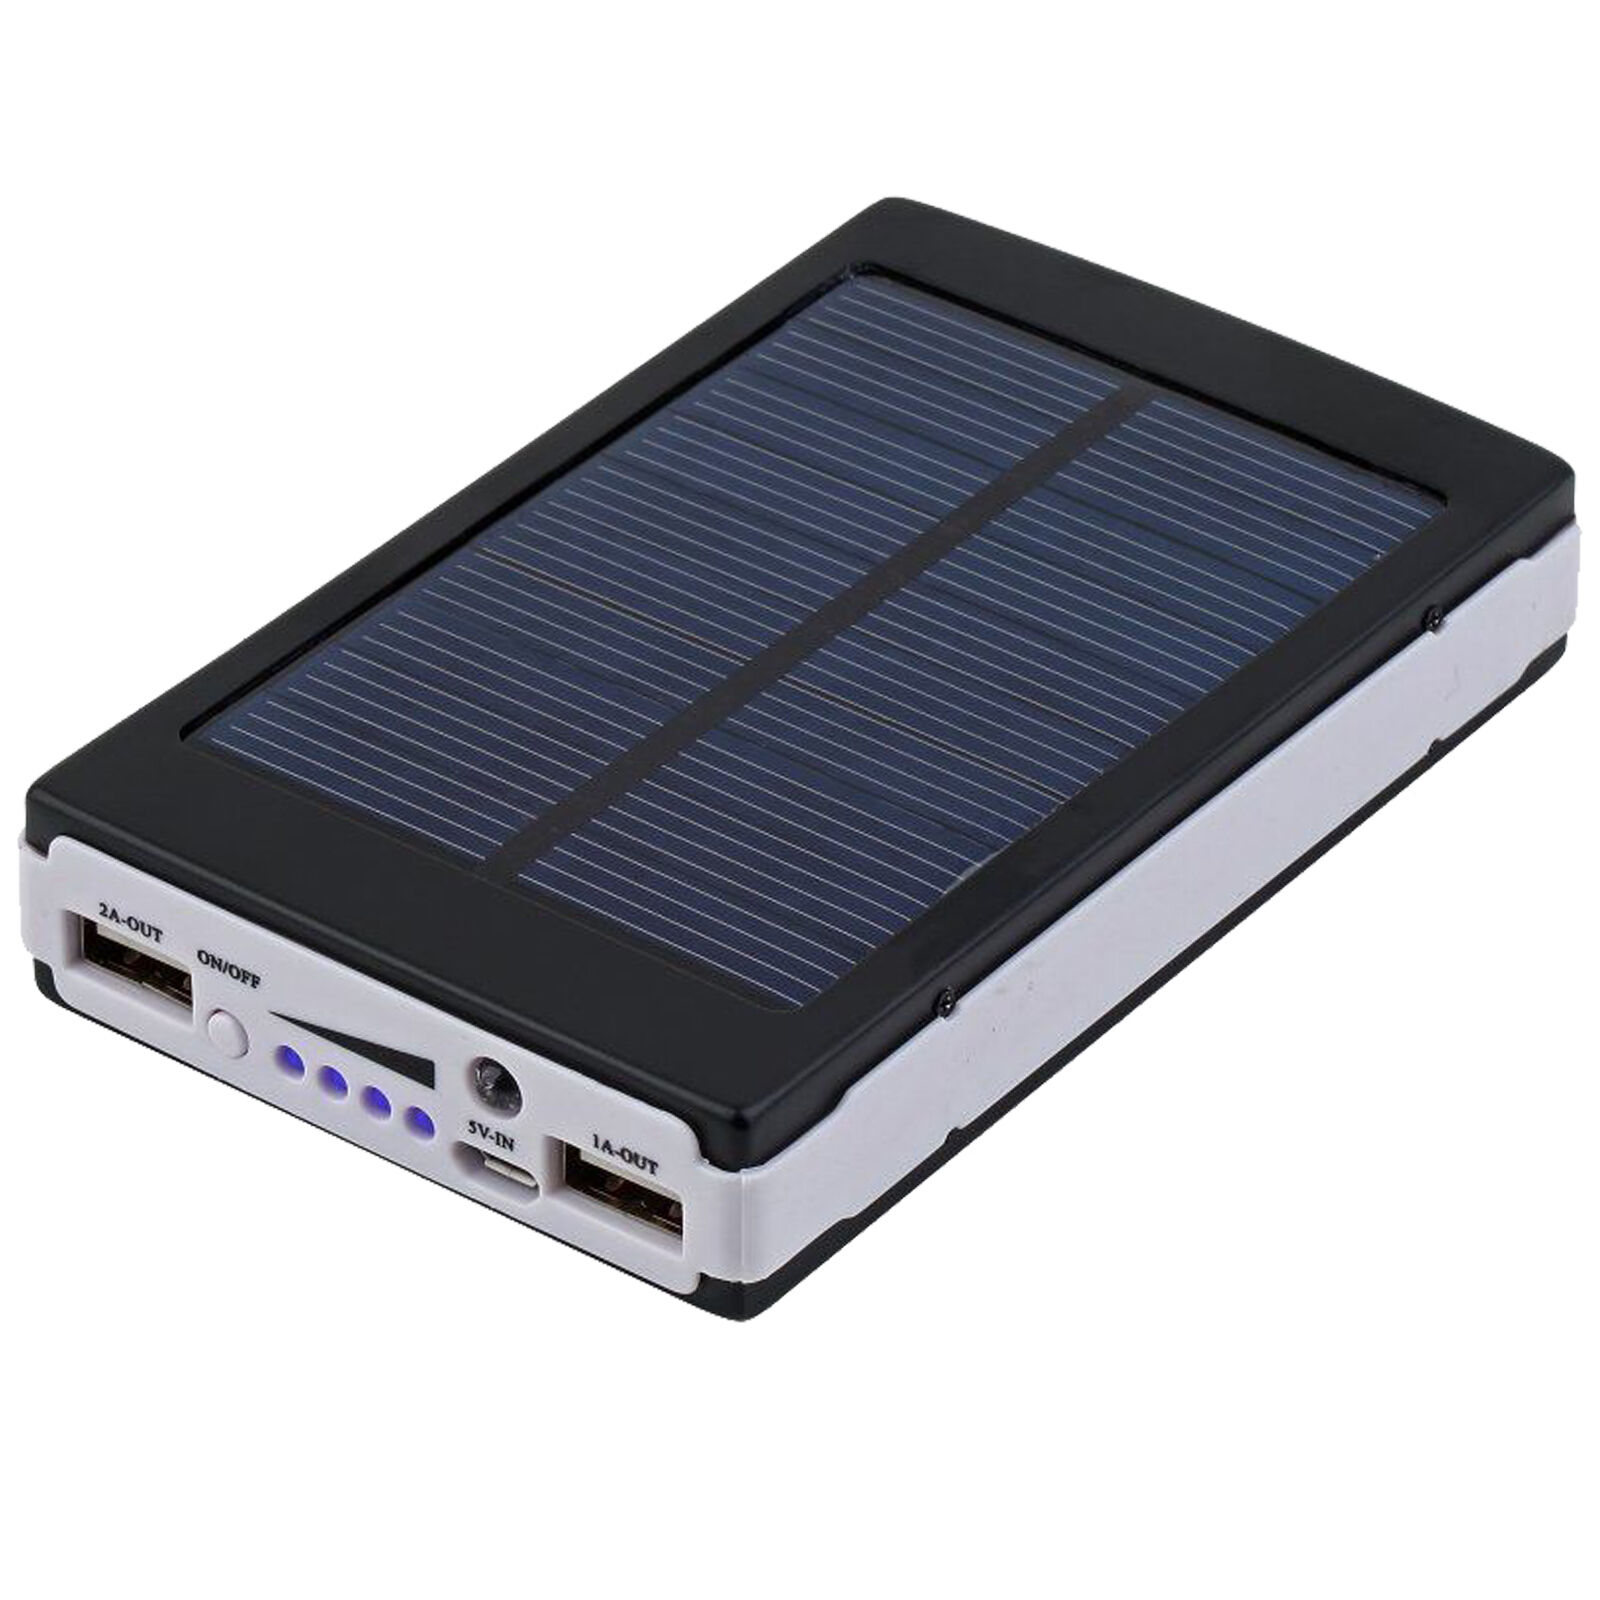 Black 80000mAh Dual USB Portable Solar Battery Charger Power Bank For Cell Phone Cell Phone Accessories